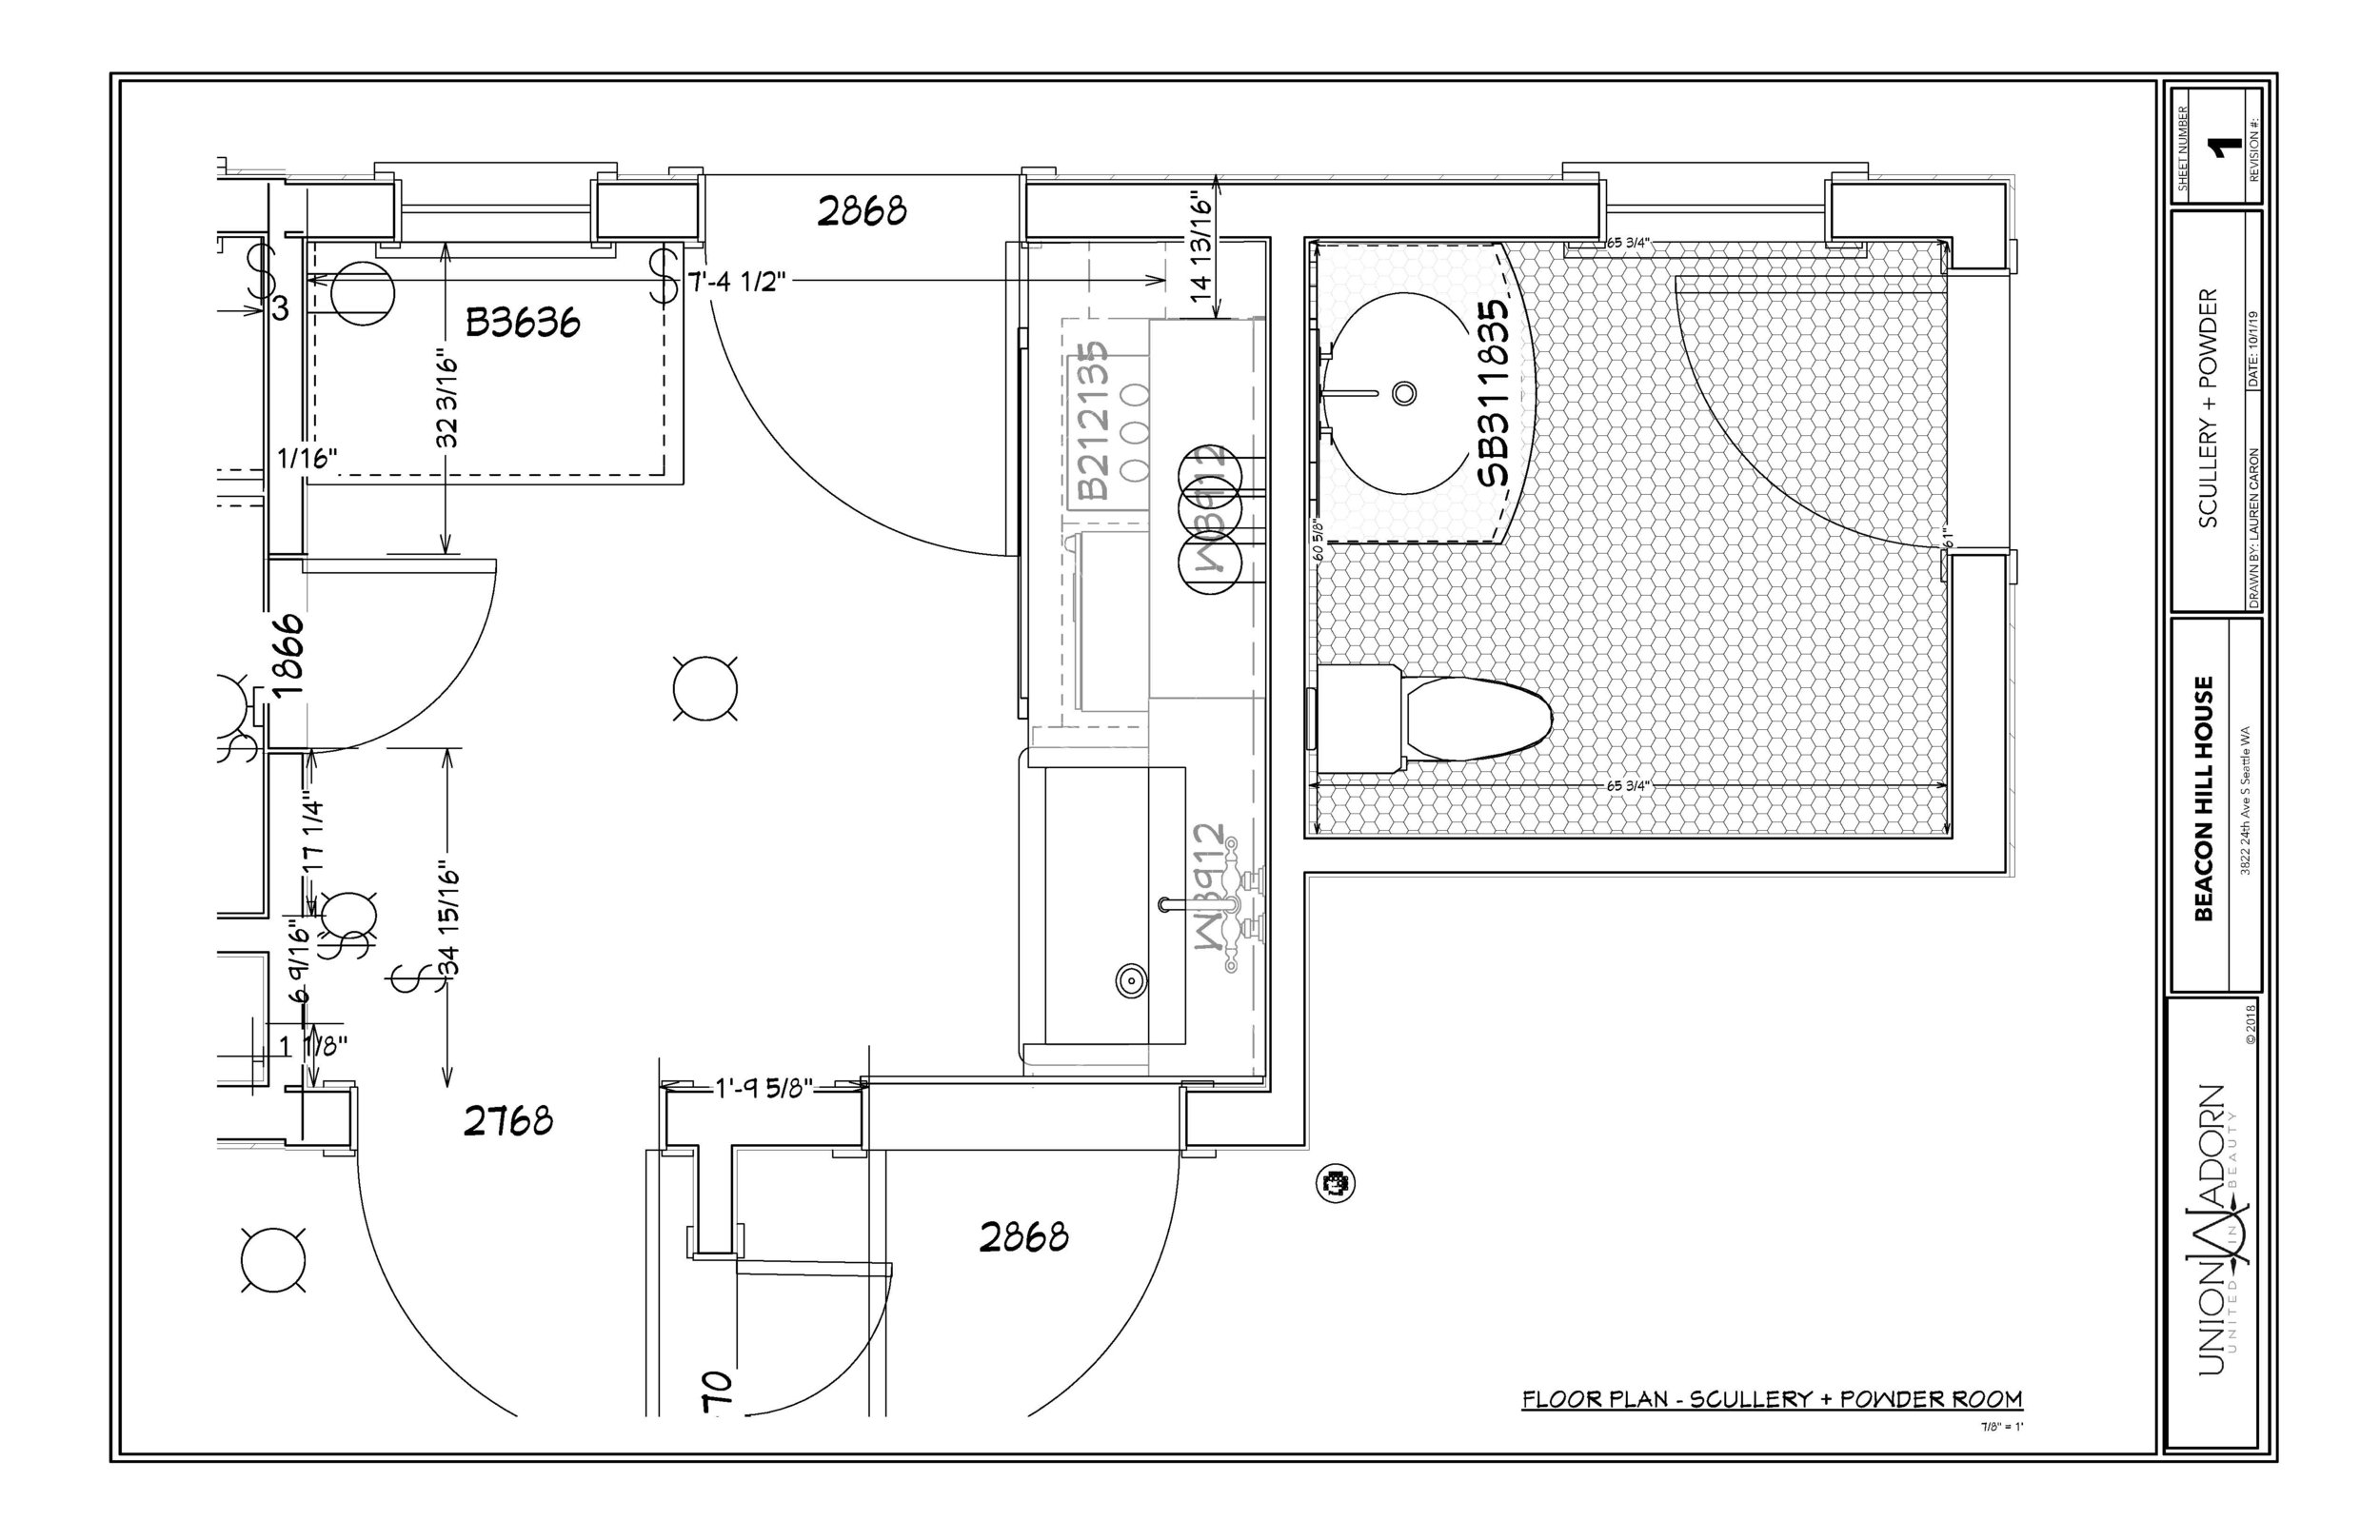 Proposed Floor plan of Scullery + Powder Room